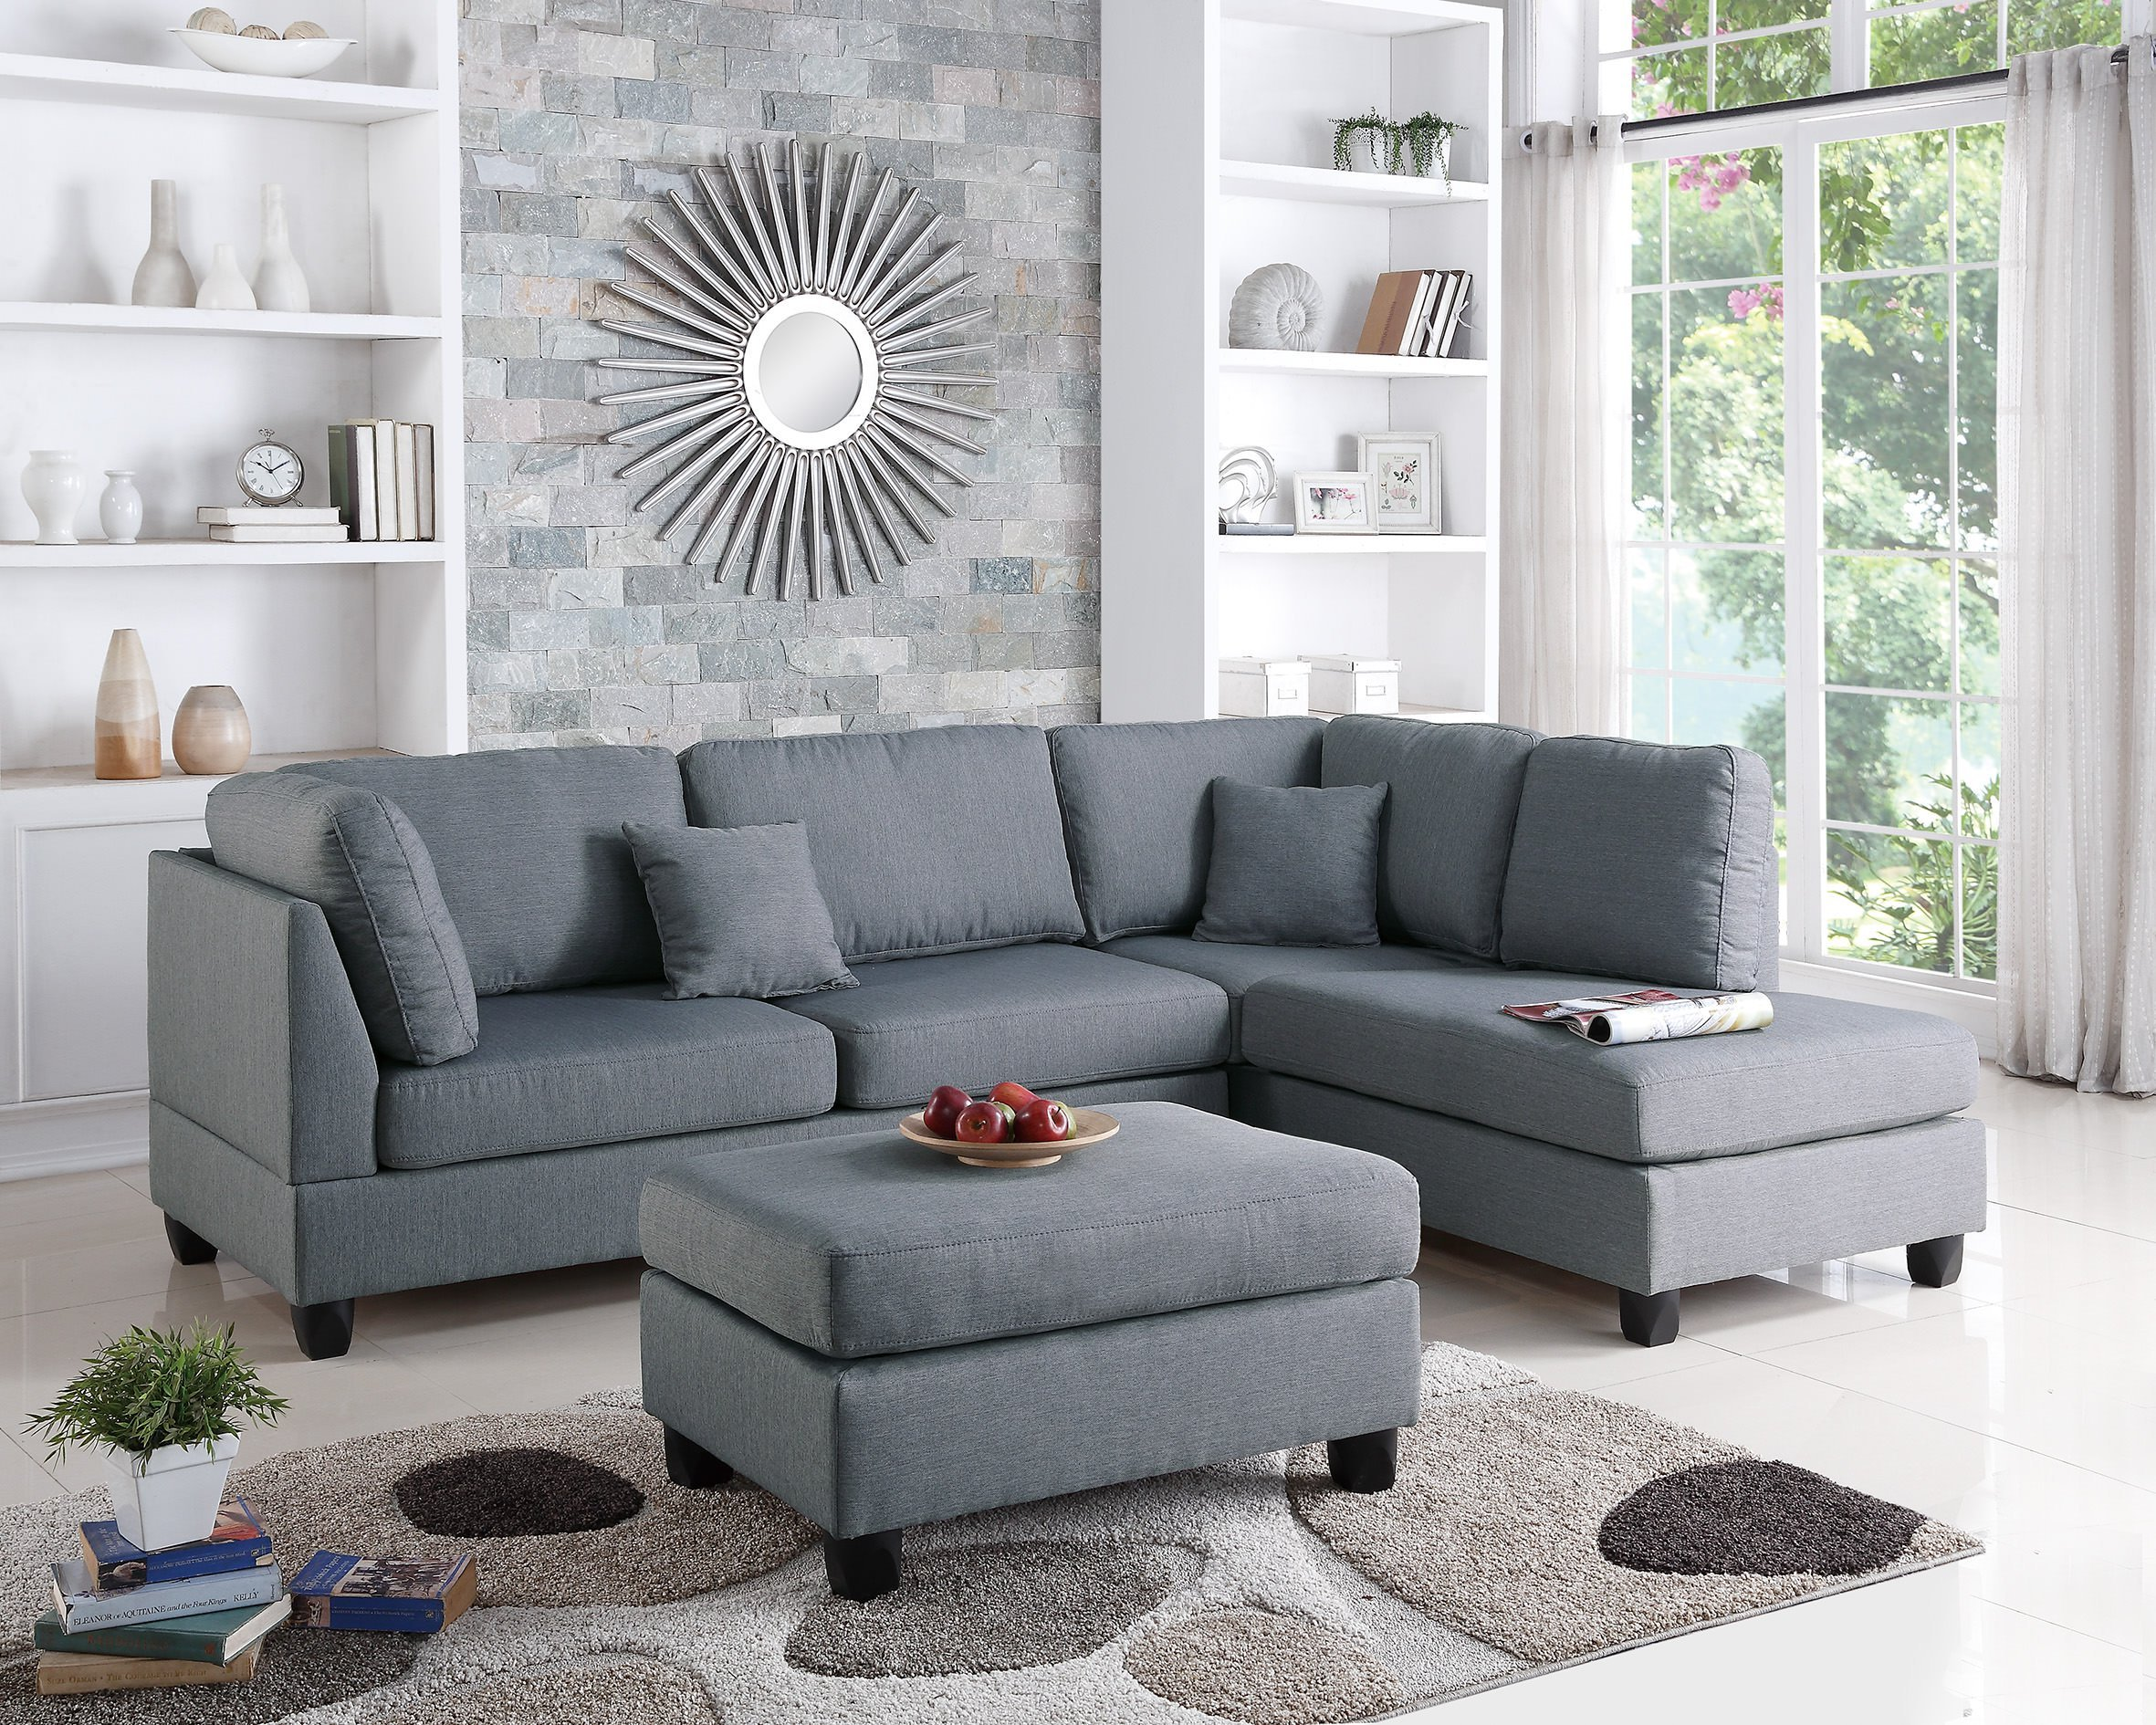 Poundex PDEX-F7606 Upholstered Sofas/Sectionals/Armchairs, Grey